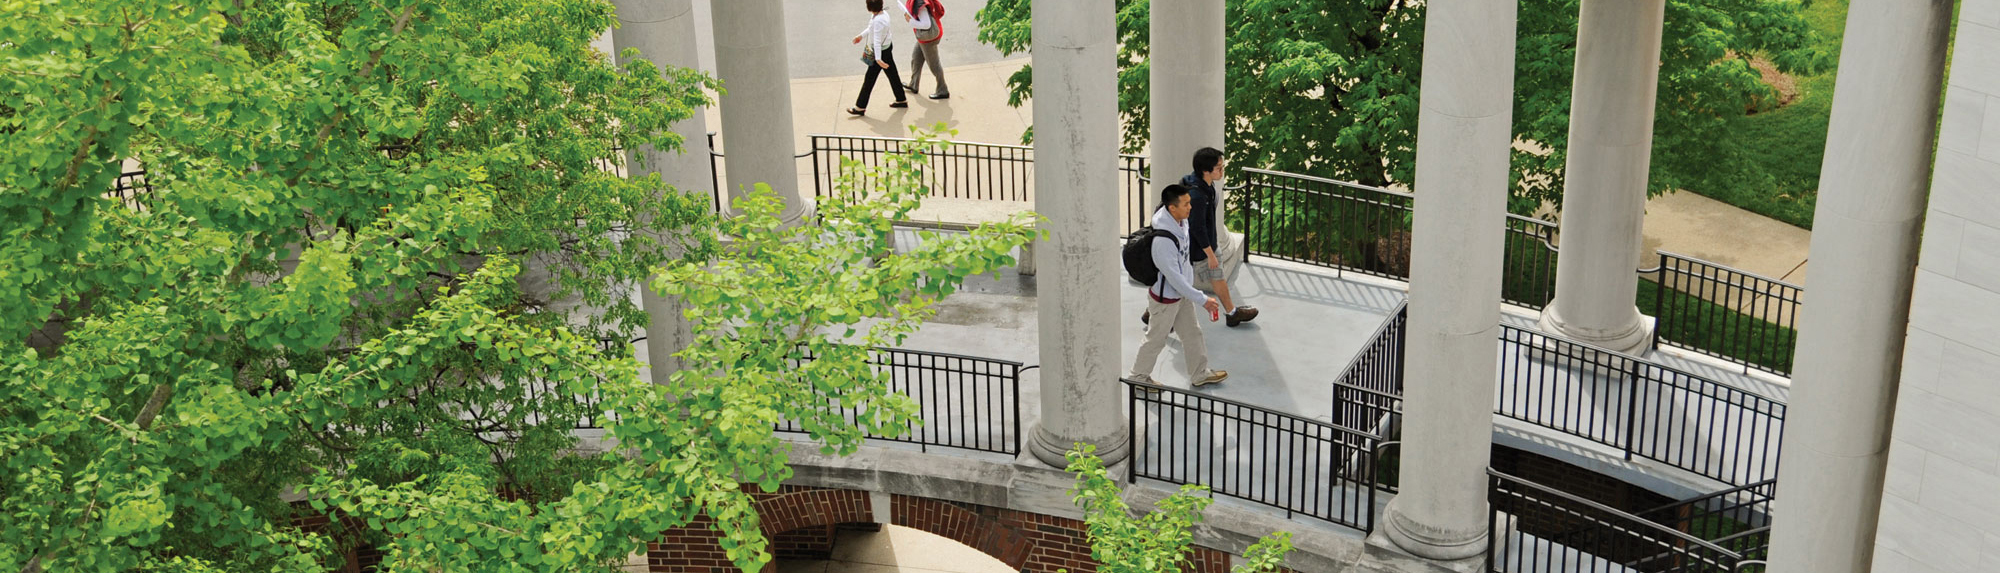 Campus Green Walkway